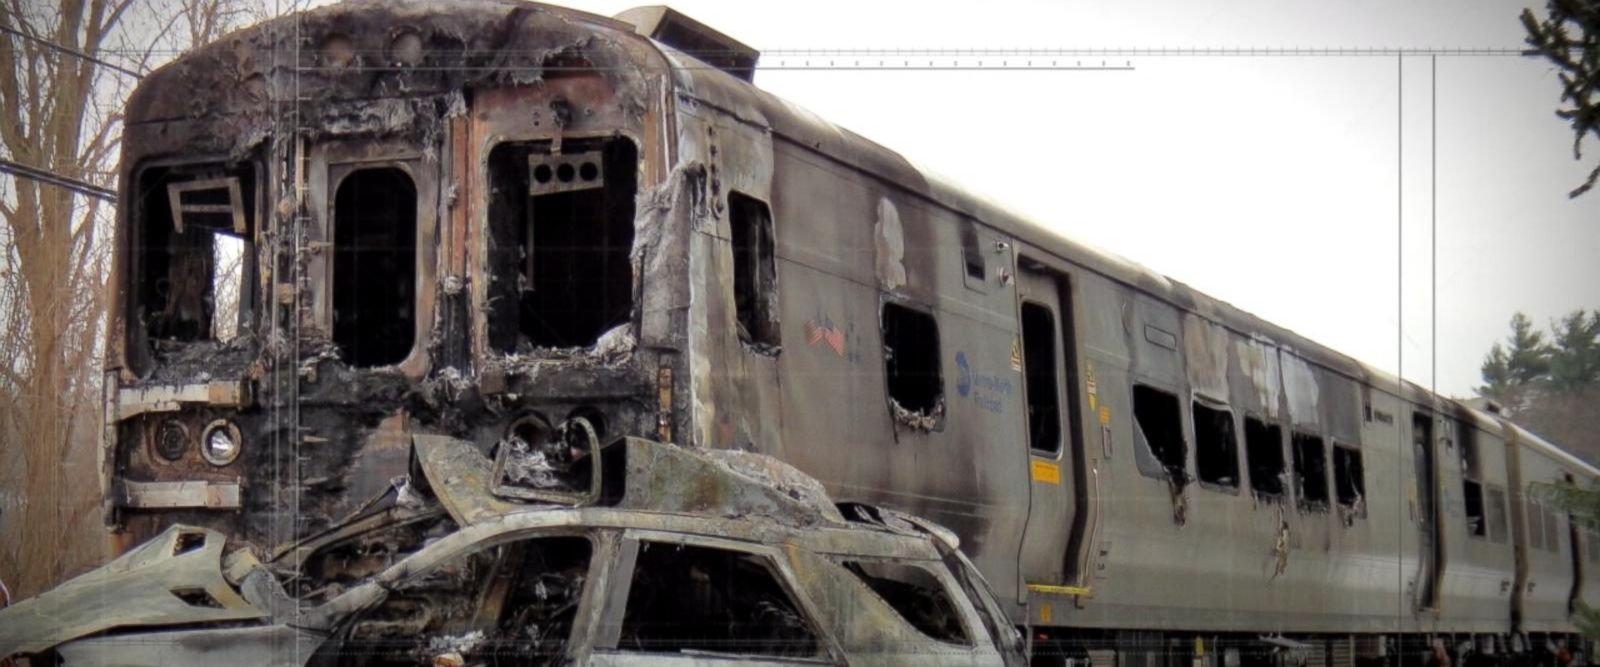 VIDEO: New information in the 2015 deadly train collision outside New York City